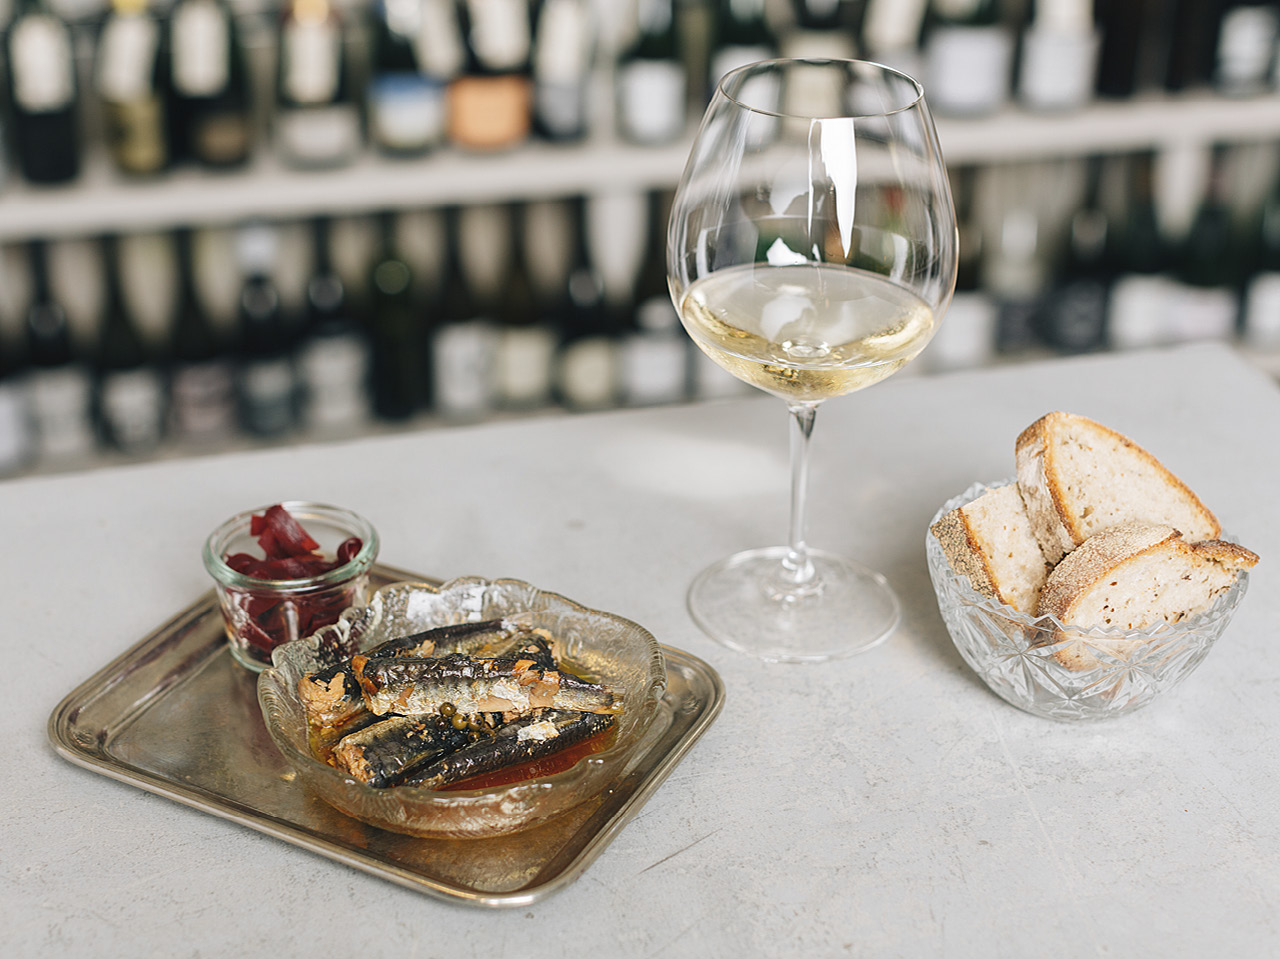 Sardines Rödel with green peppers, fermented beets, bread 66 from Eska